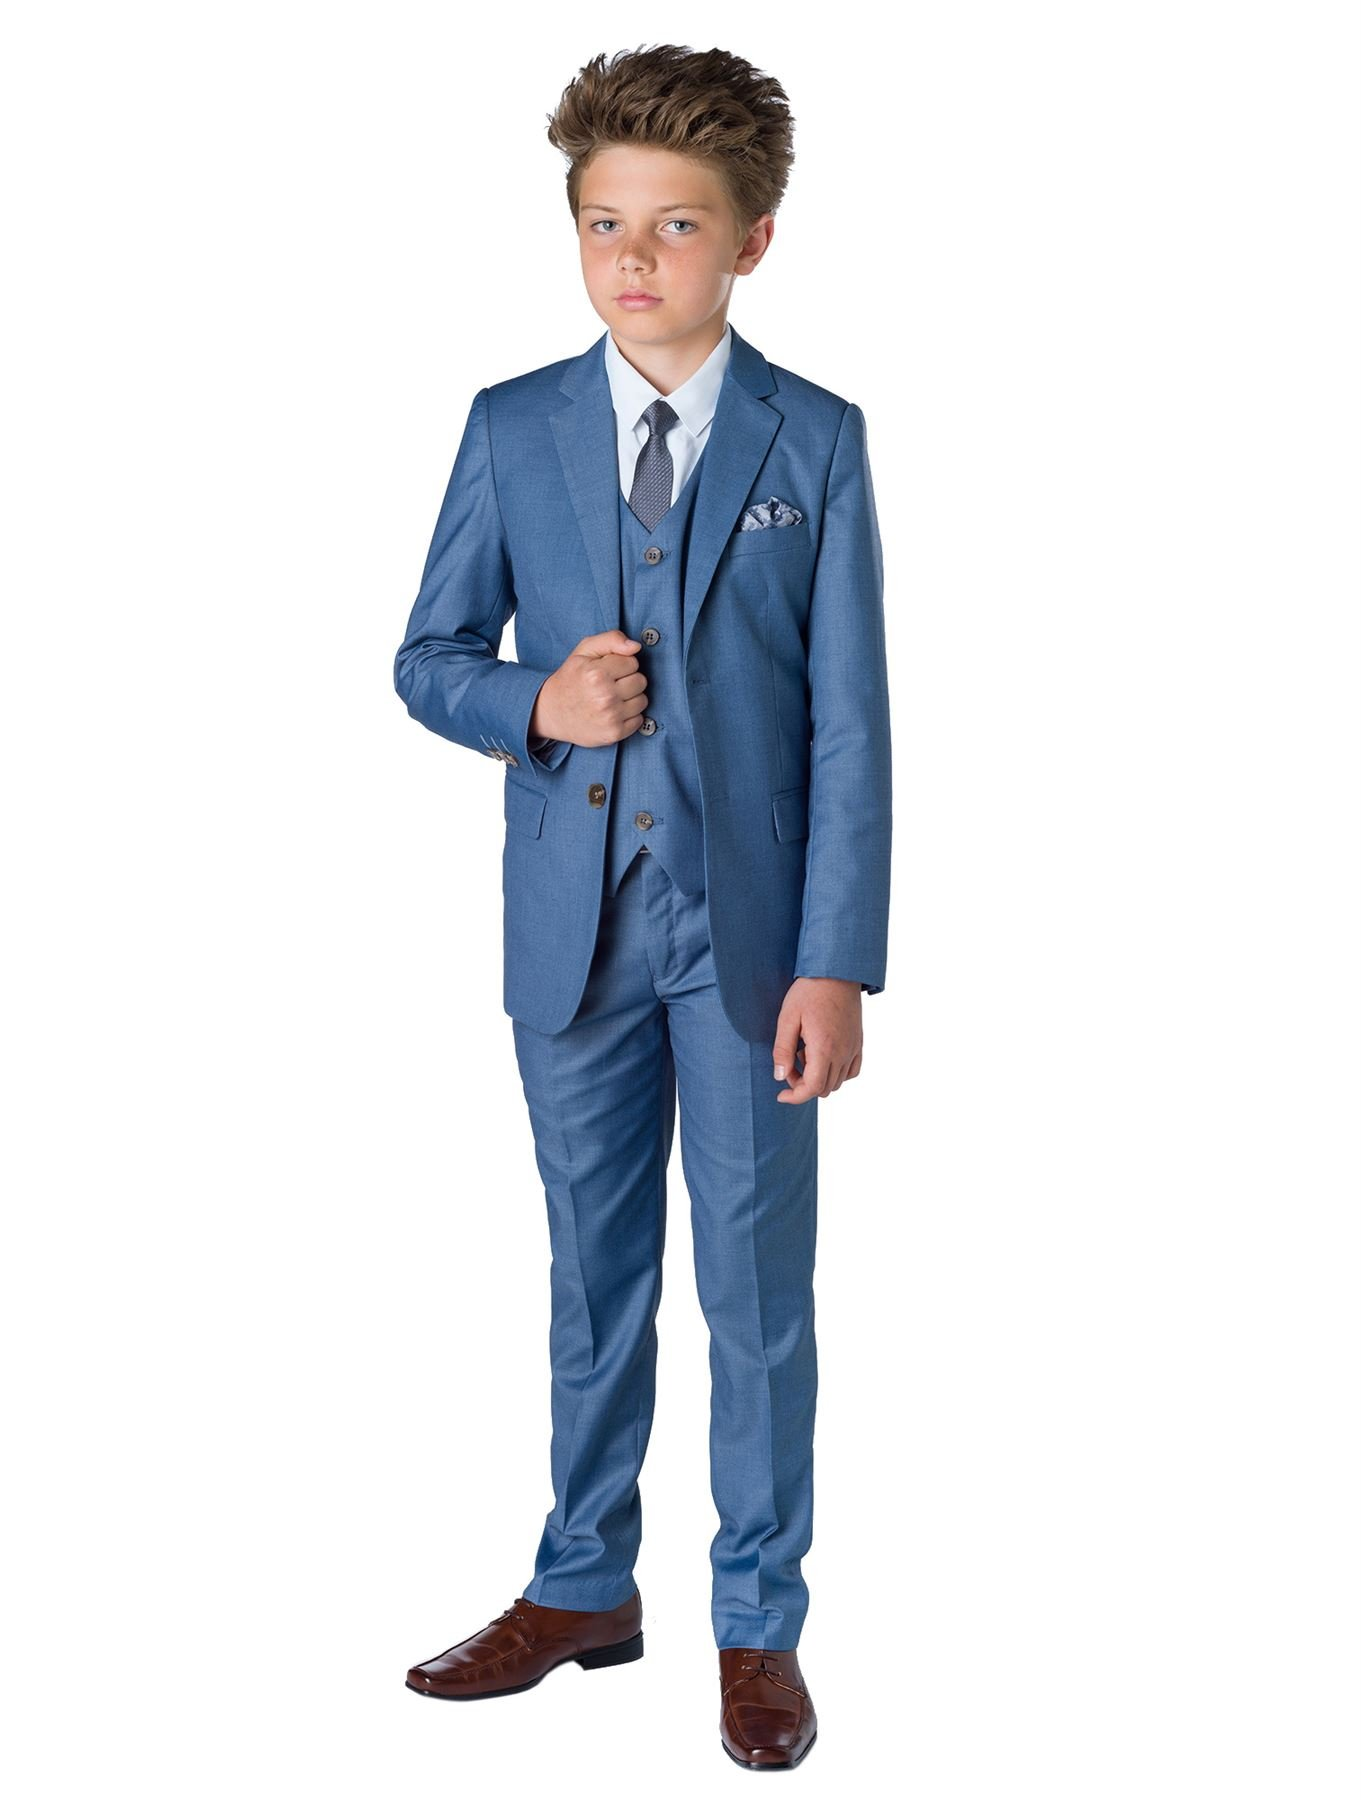 Paisley of London, Boys Chambray Slim fit Suit with Vest and Shirt, Ring Bearer Suit, 8